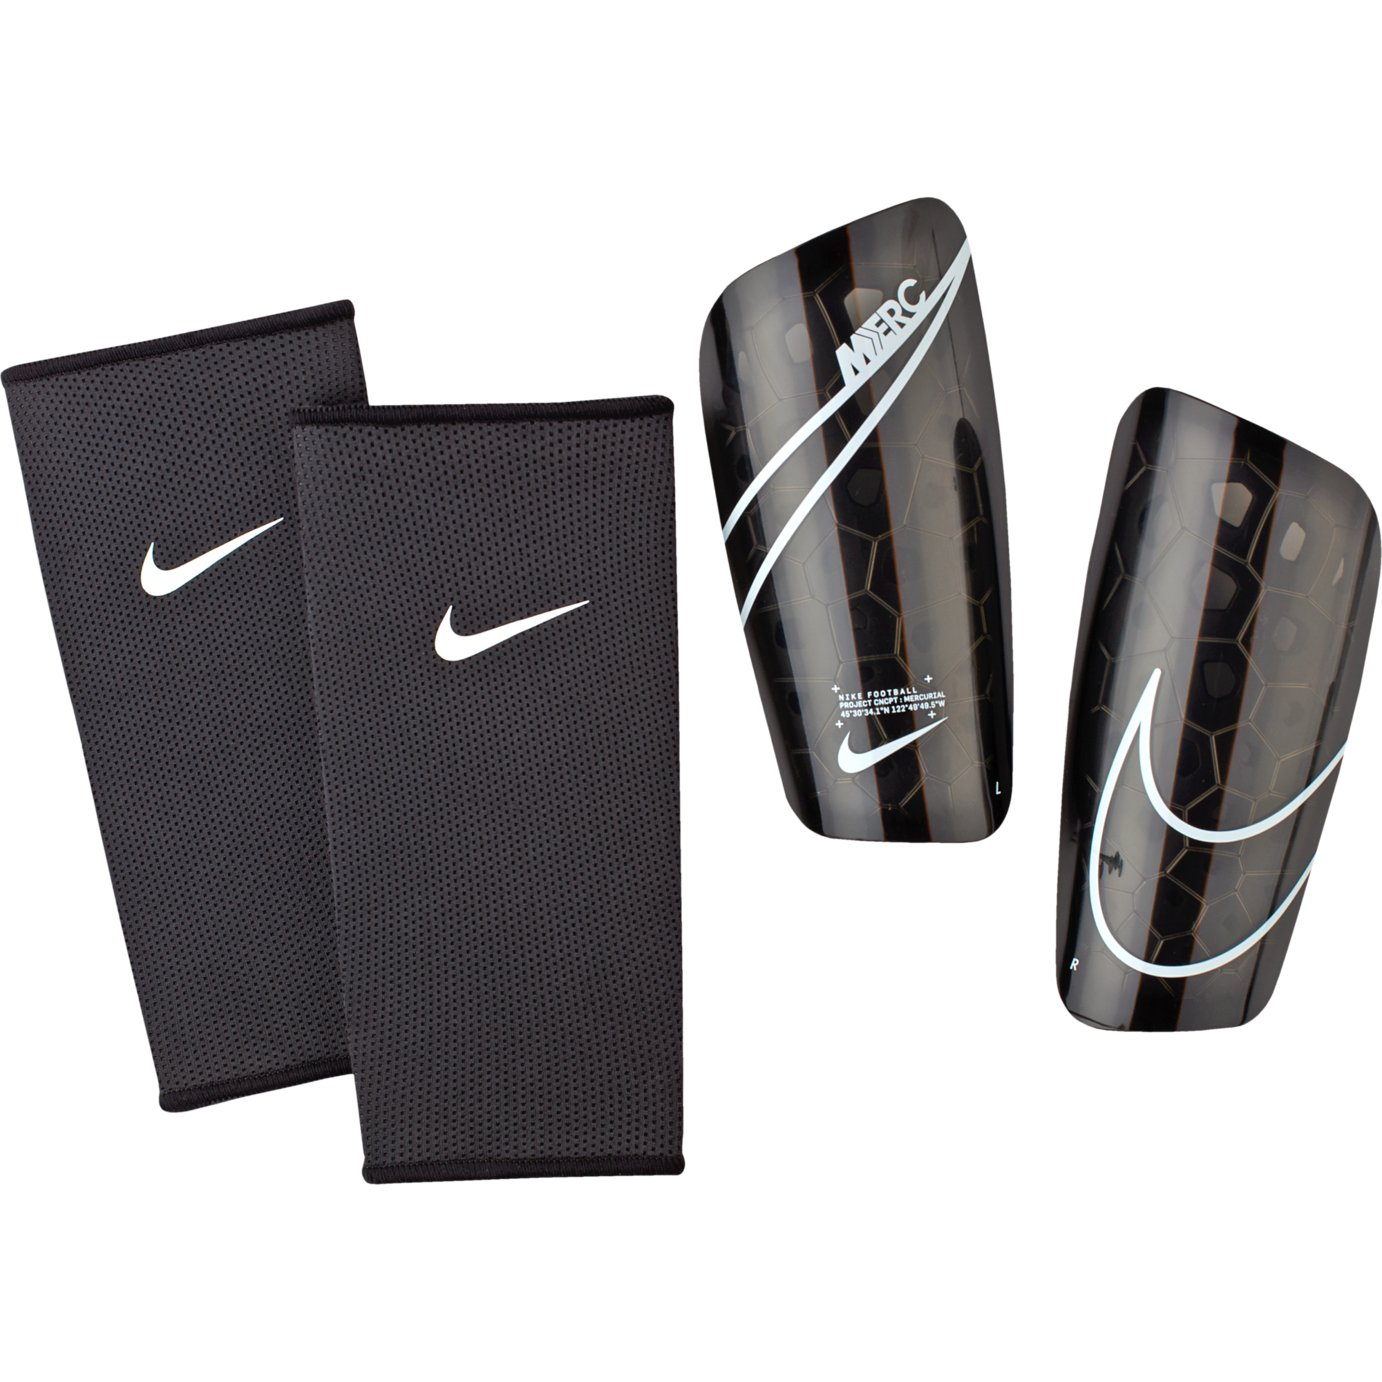 Nike Mercurial Lite Slip In Adult Shin Pads - Black